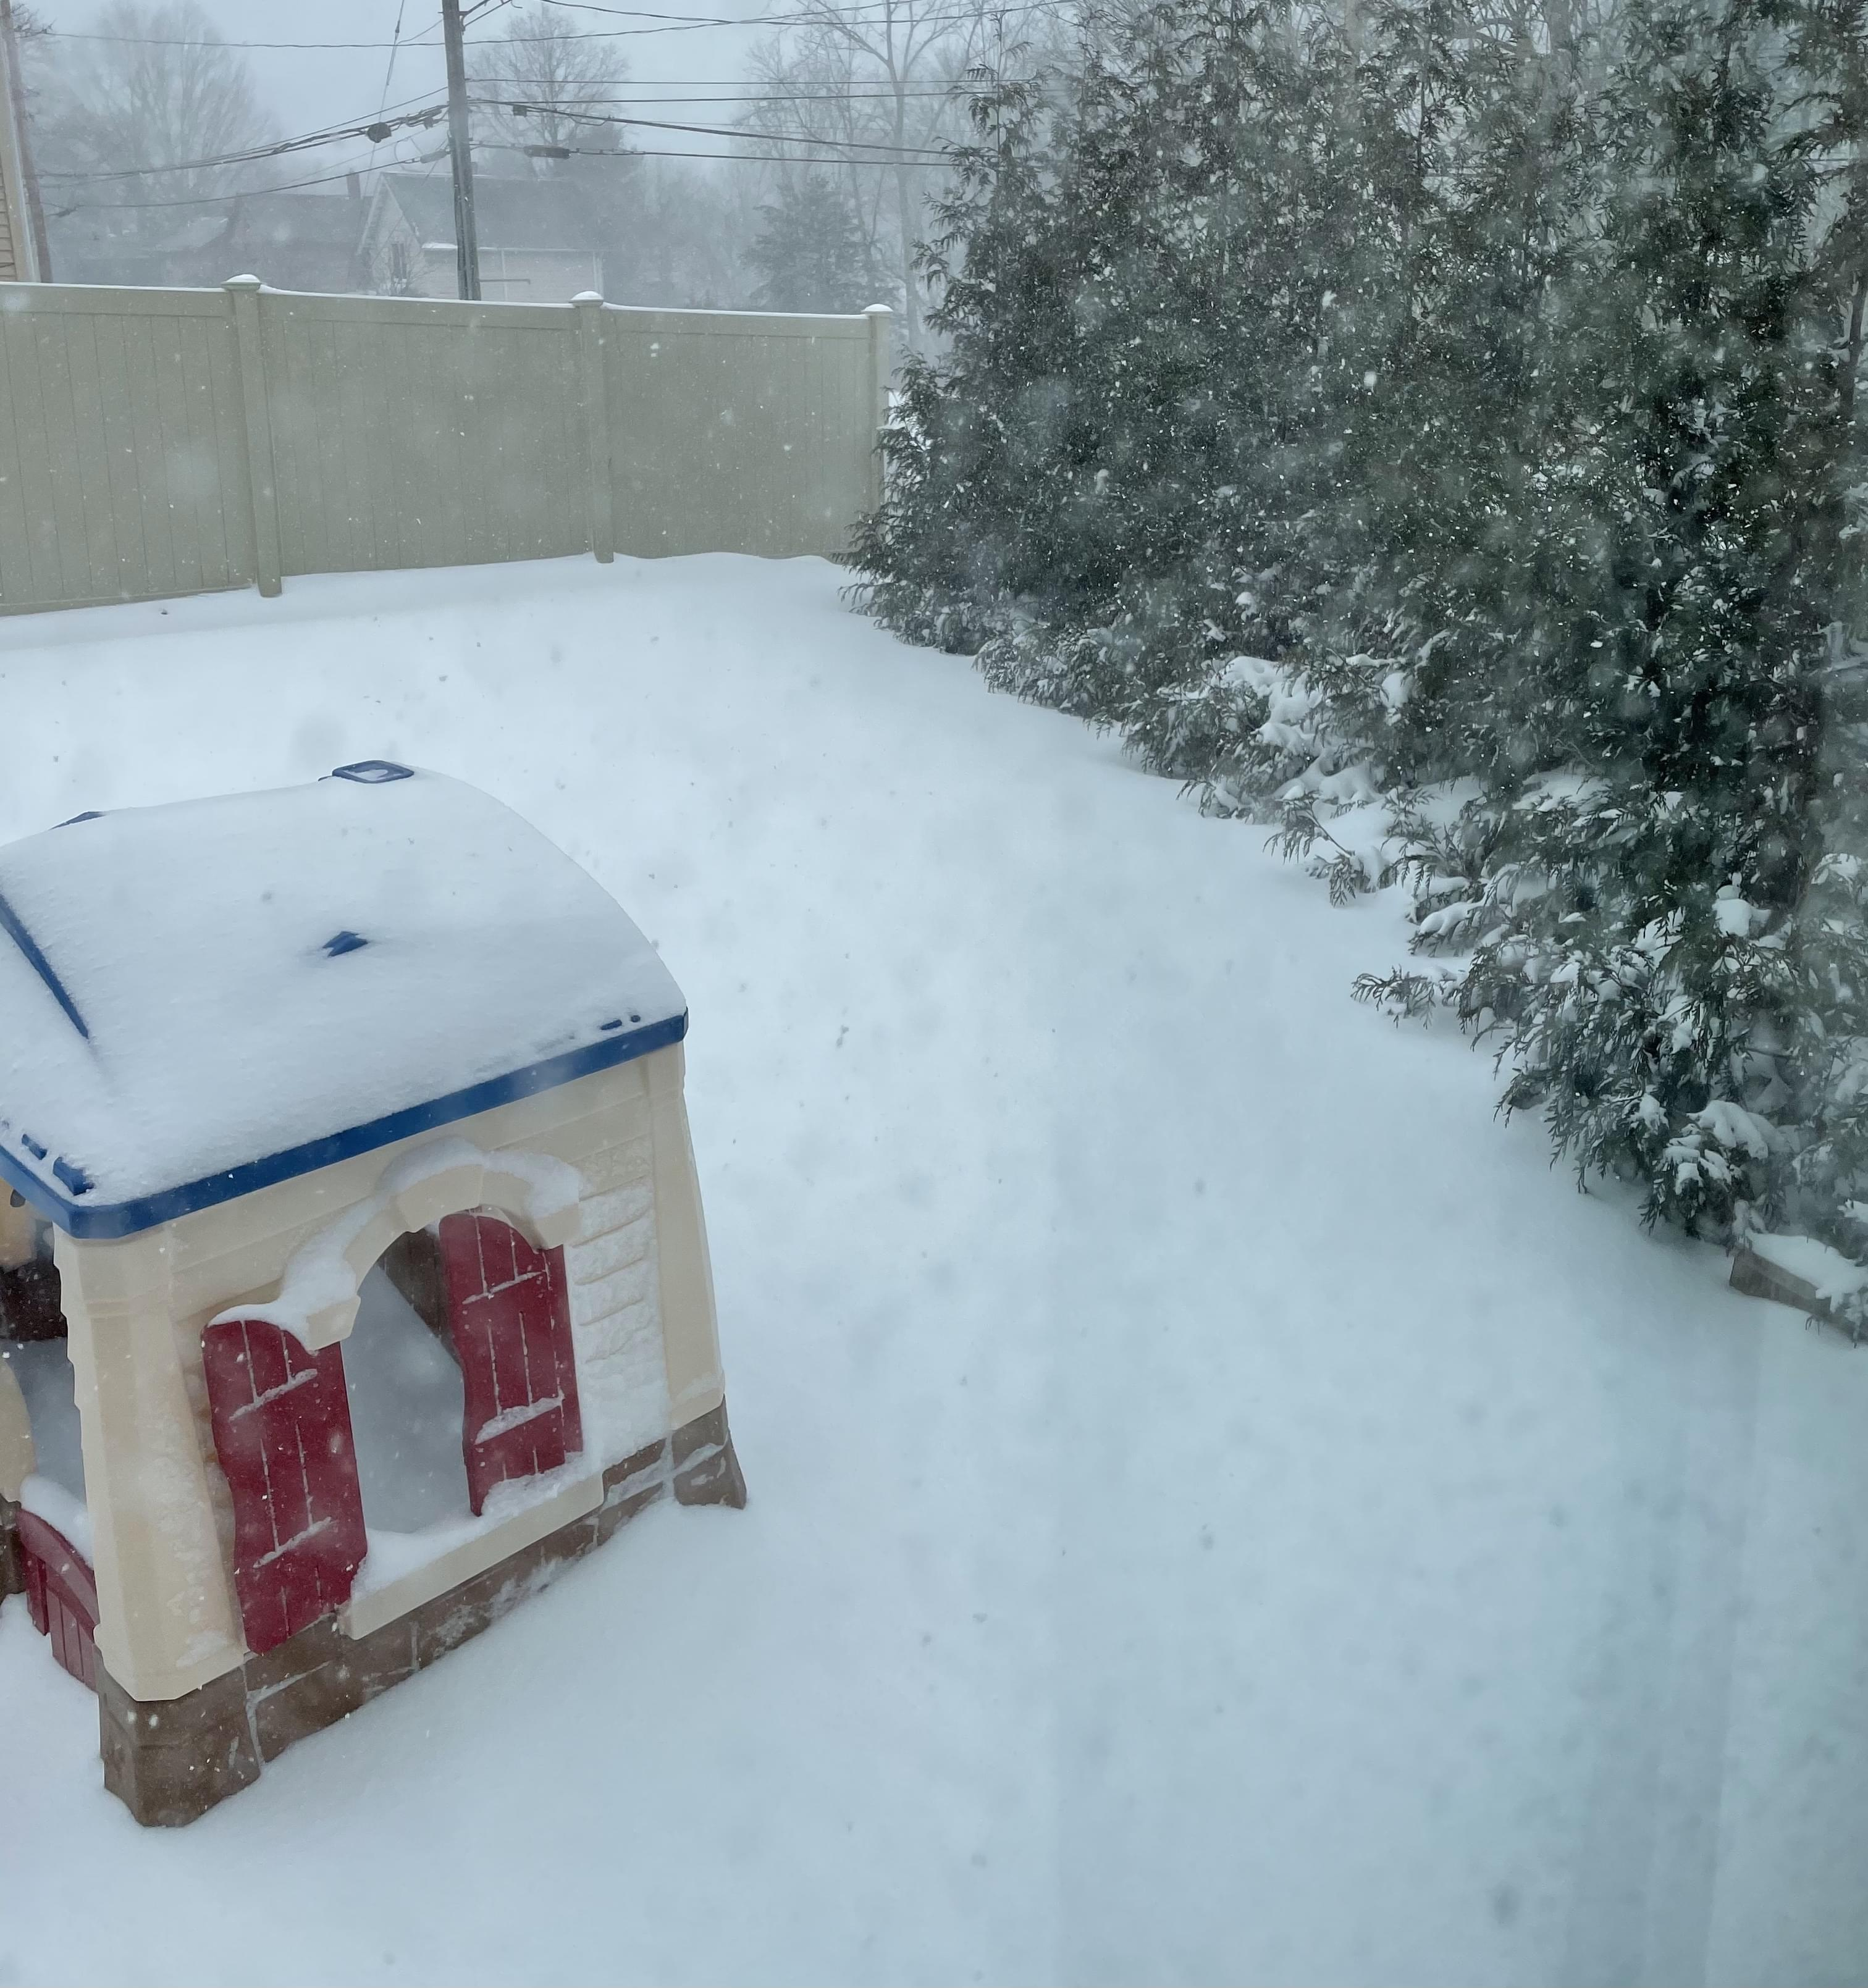 MUNDANE MYSTERIES: How much snow can fall in 24 hours?